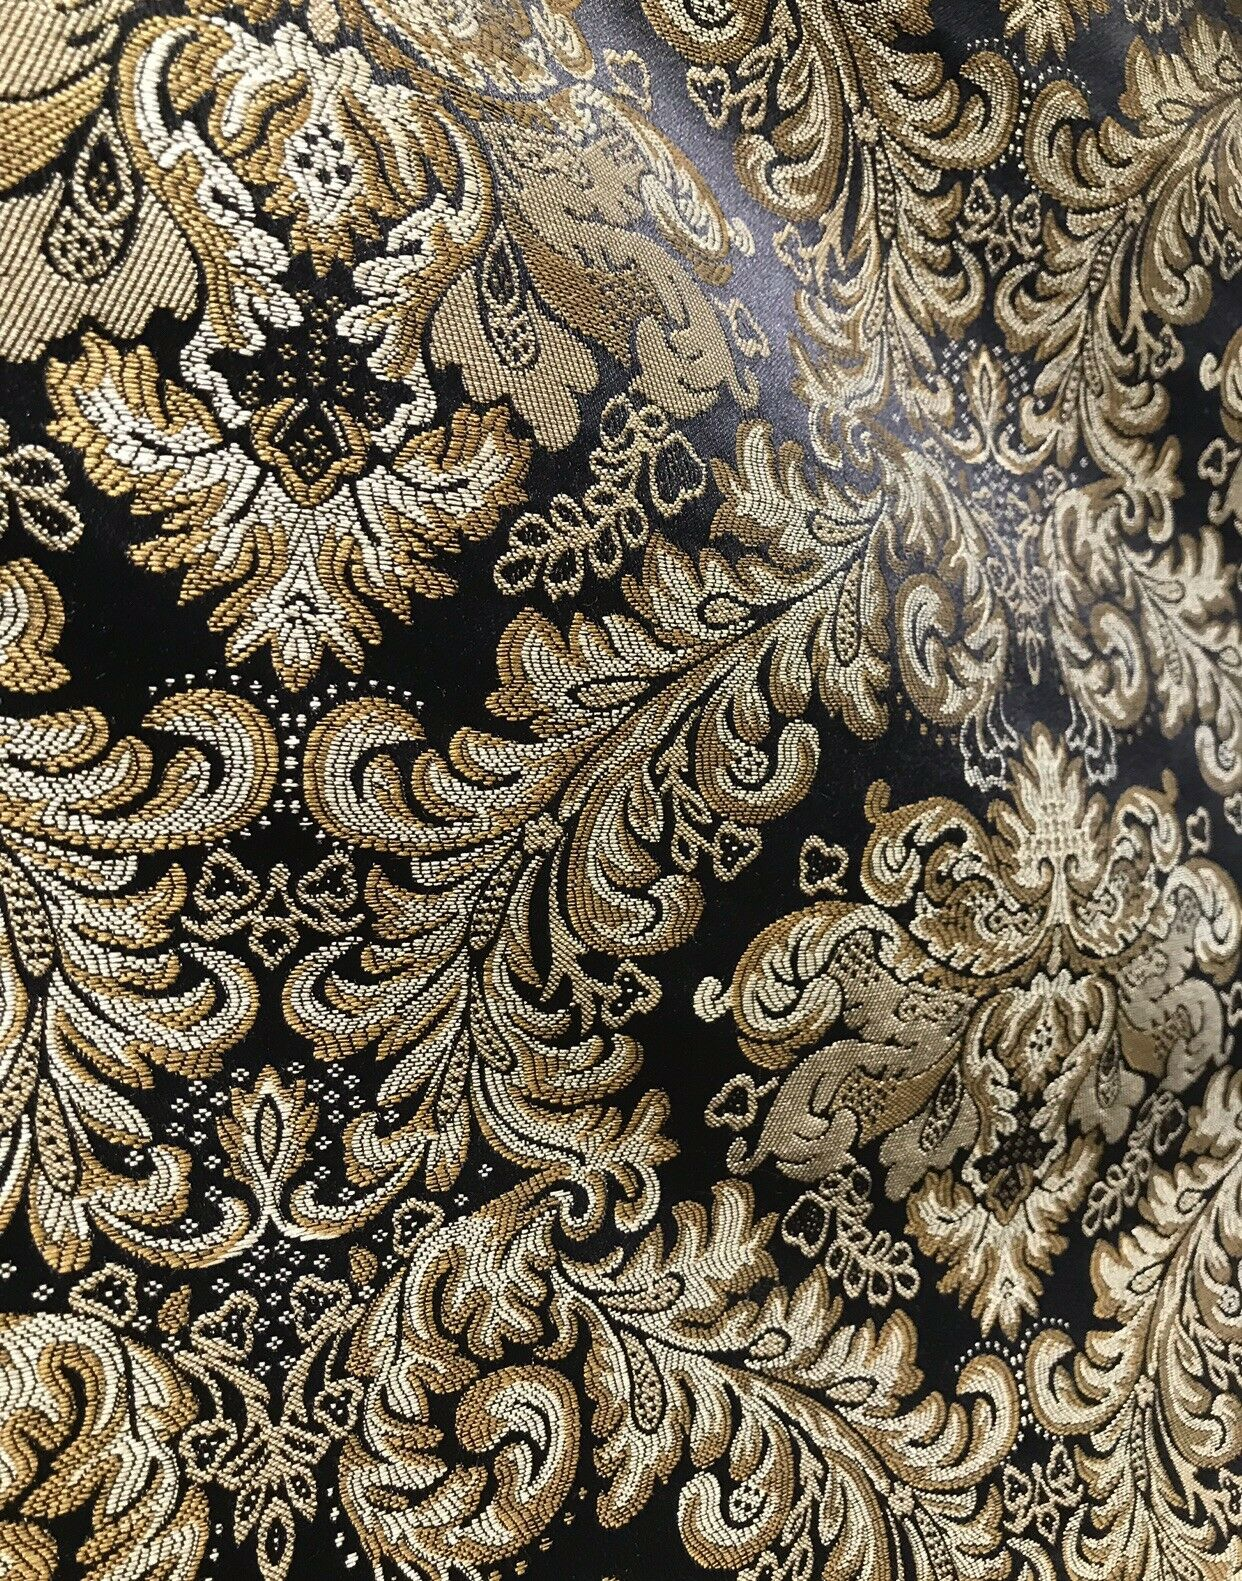 Prince Liam Neoclassical Brocade Satin Fabric Black Gold Upholstery Damask LLPBK0003